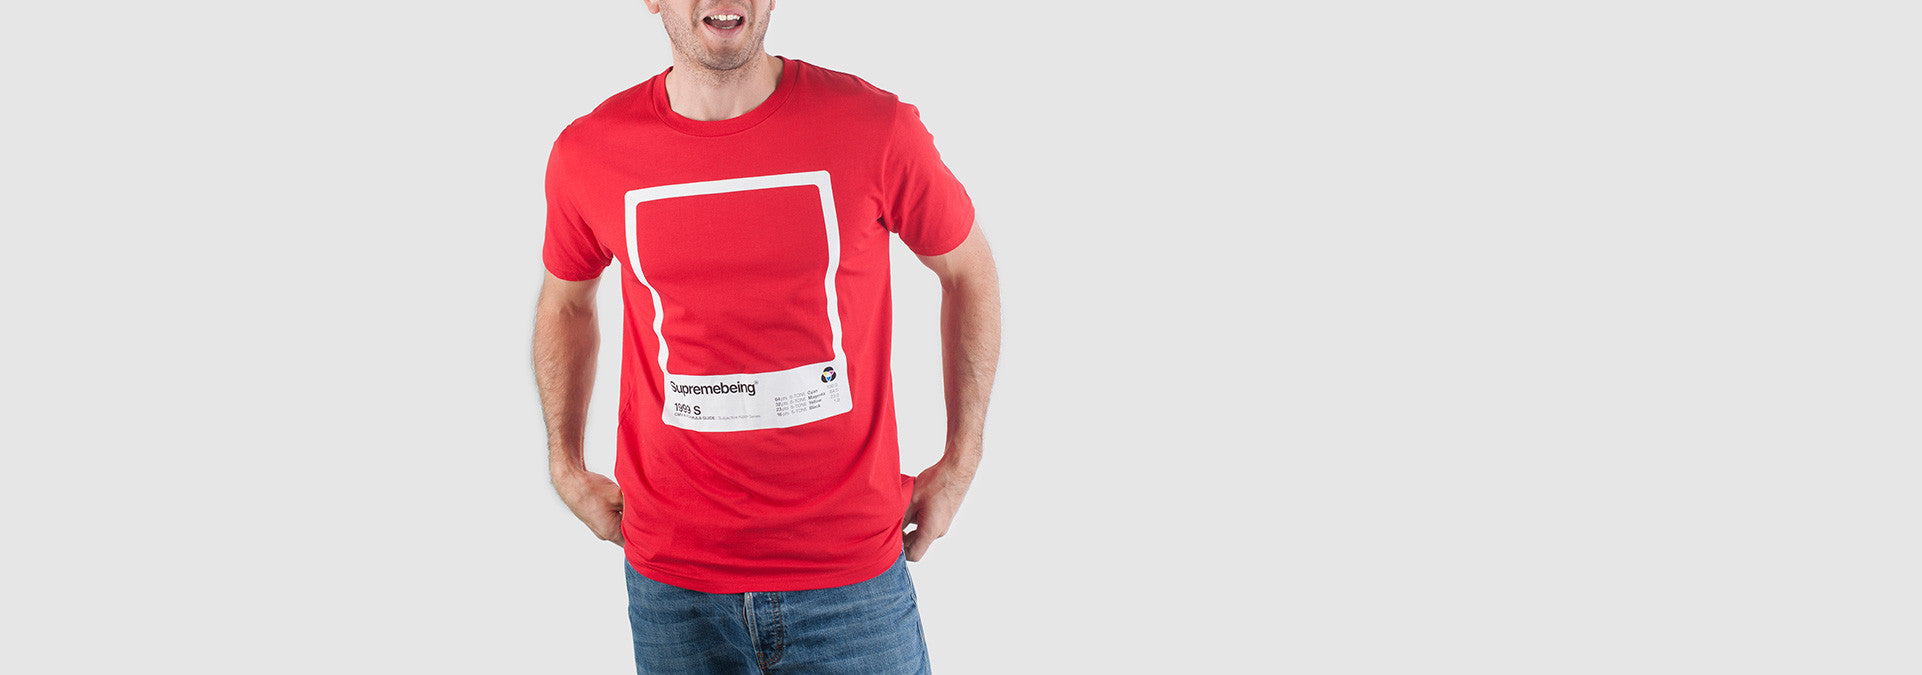 CMYK Swatch T-Shirt Red